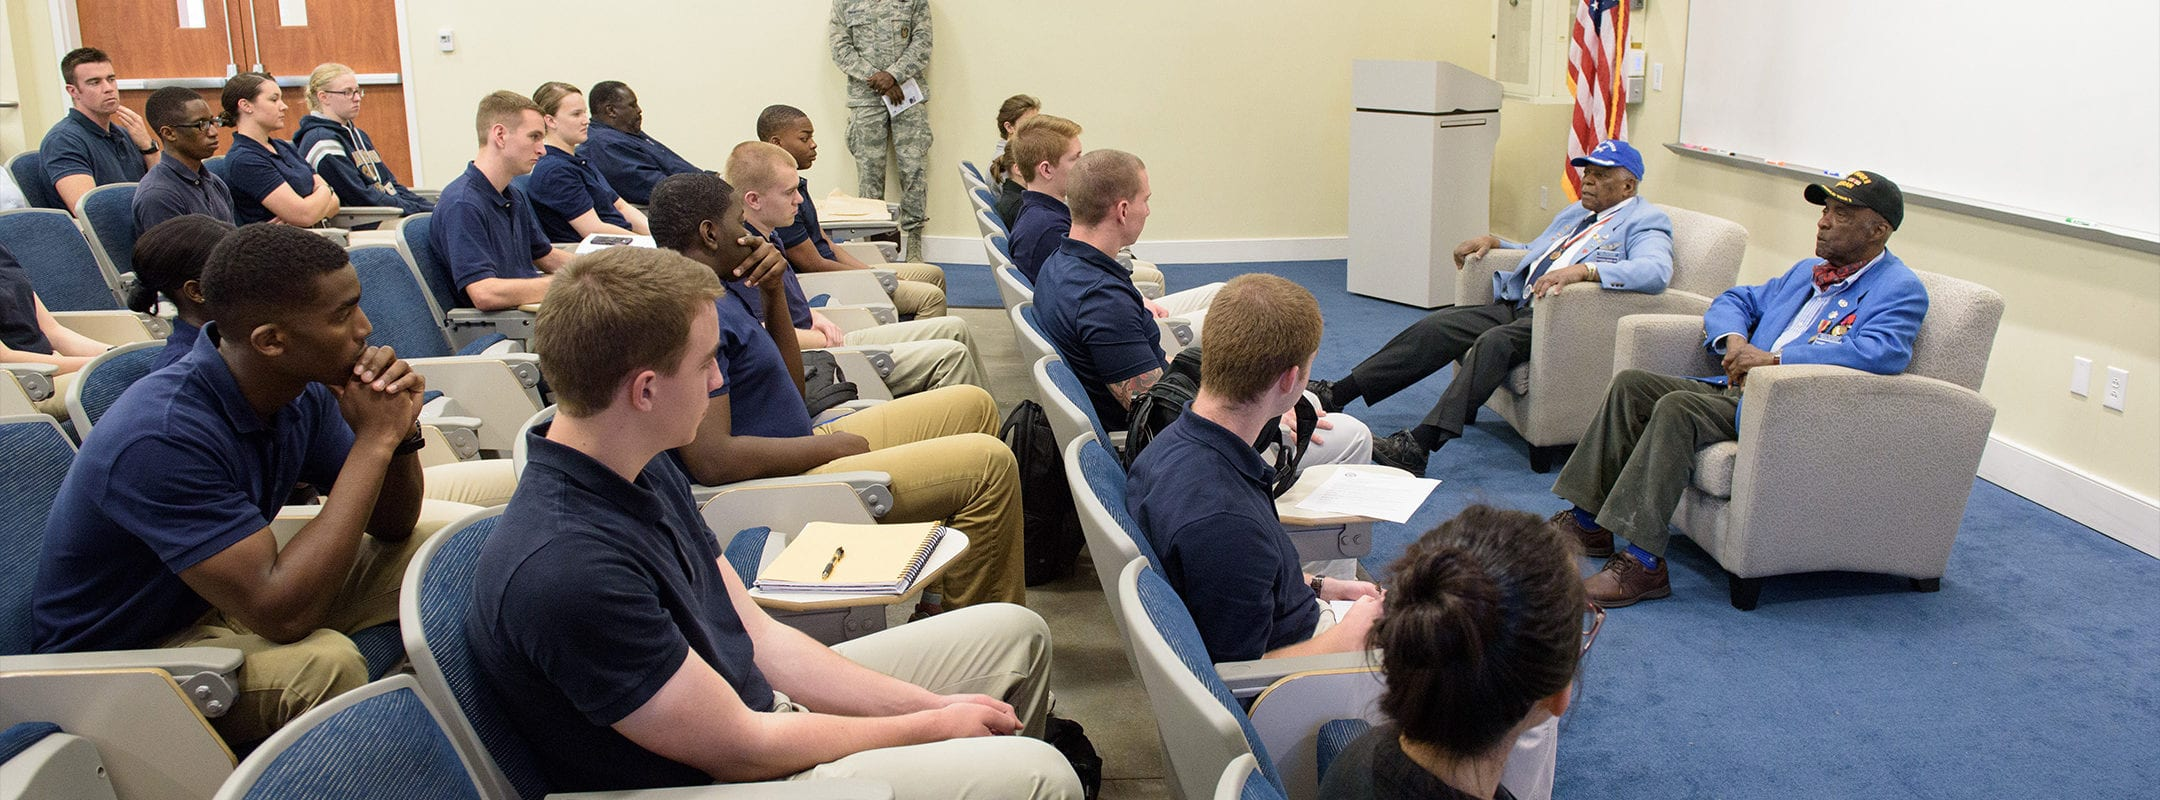 AFROTC students in a classroom listening to two veteran Tuskegee Airmen speak about their experiences in the air force.